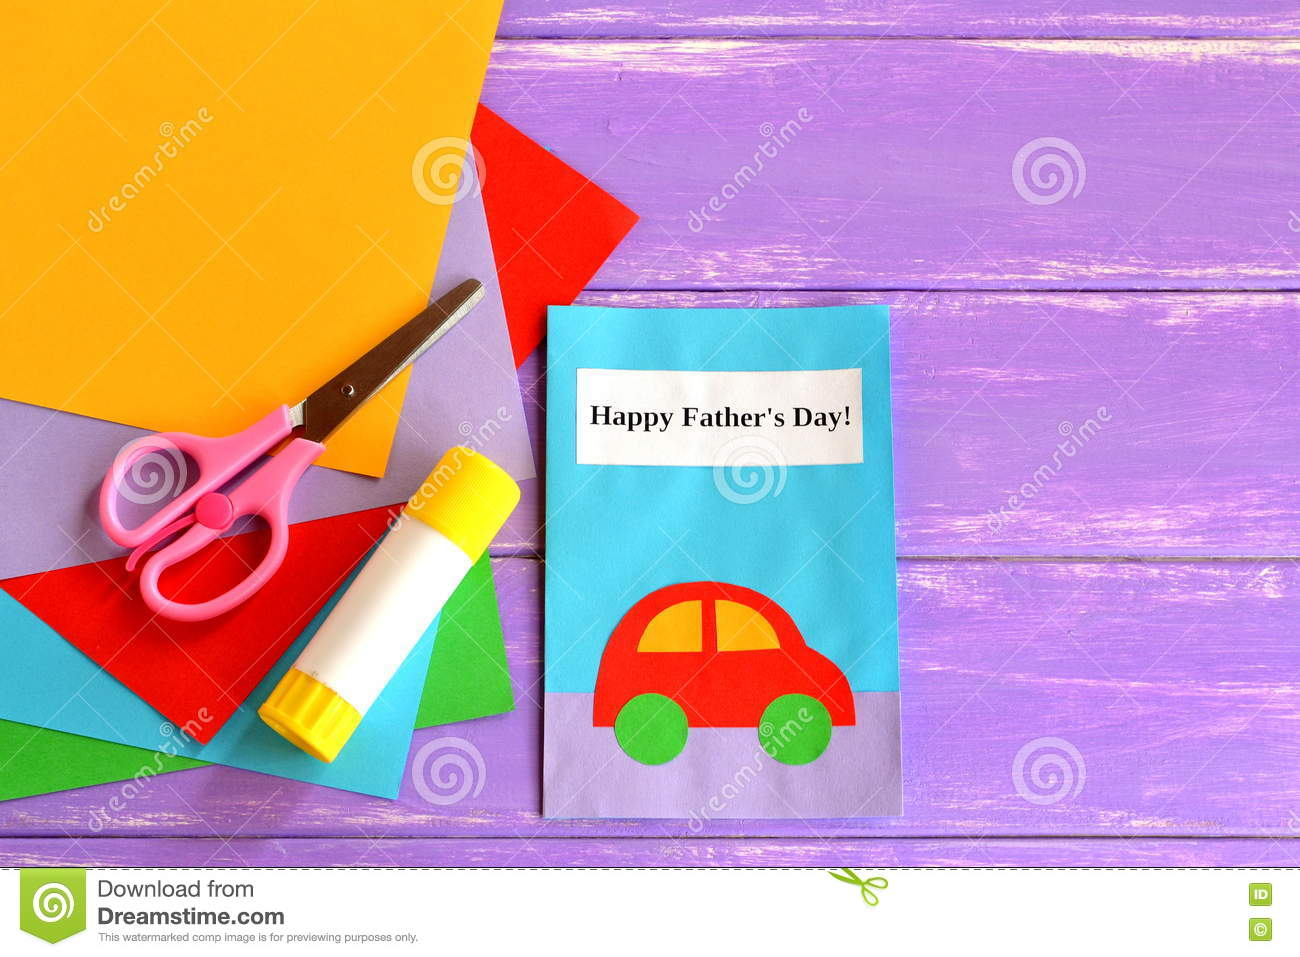 Greeting card with message happy fathers day fathers day crafts download greeting card with message happy fathers day fathers day crafts cards ideas suitable for m4hsunfo